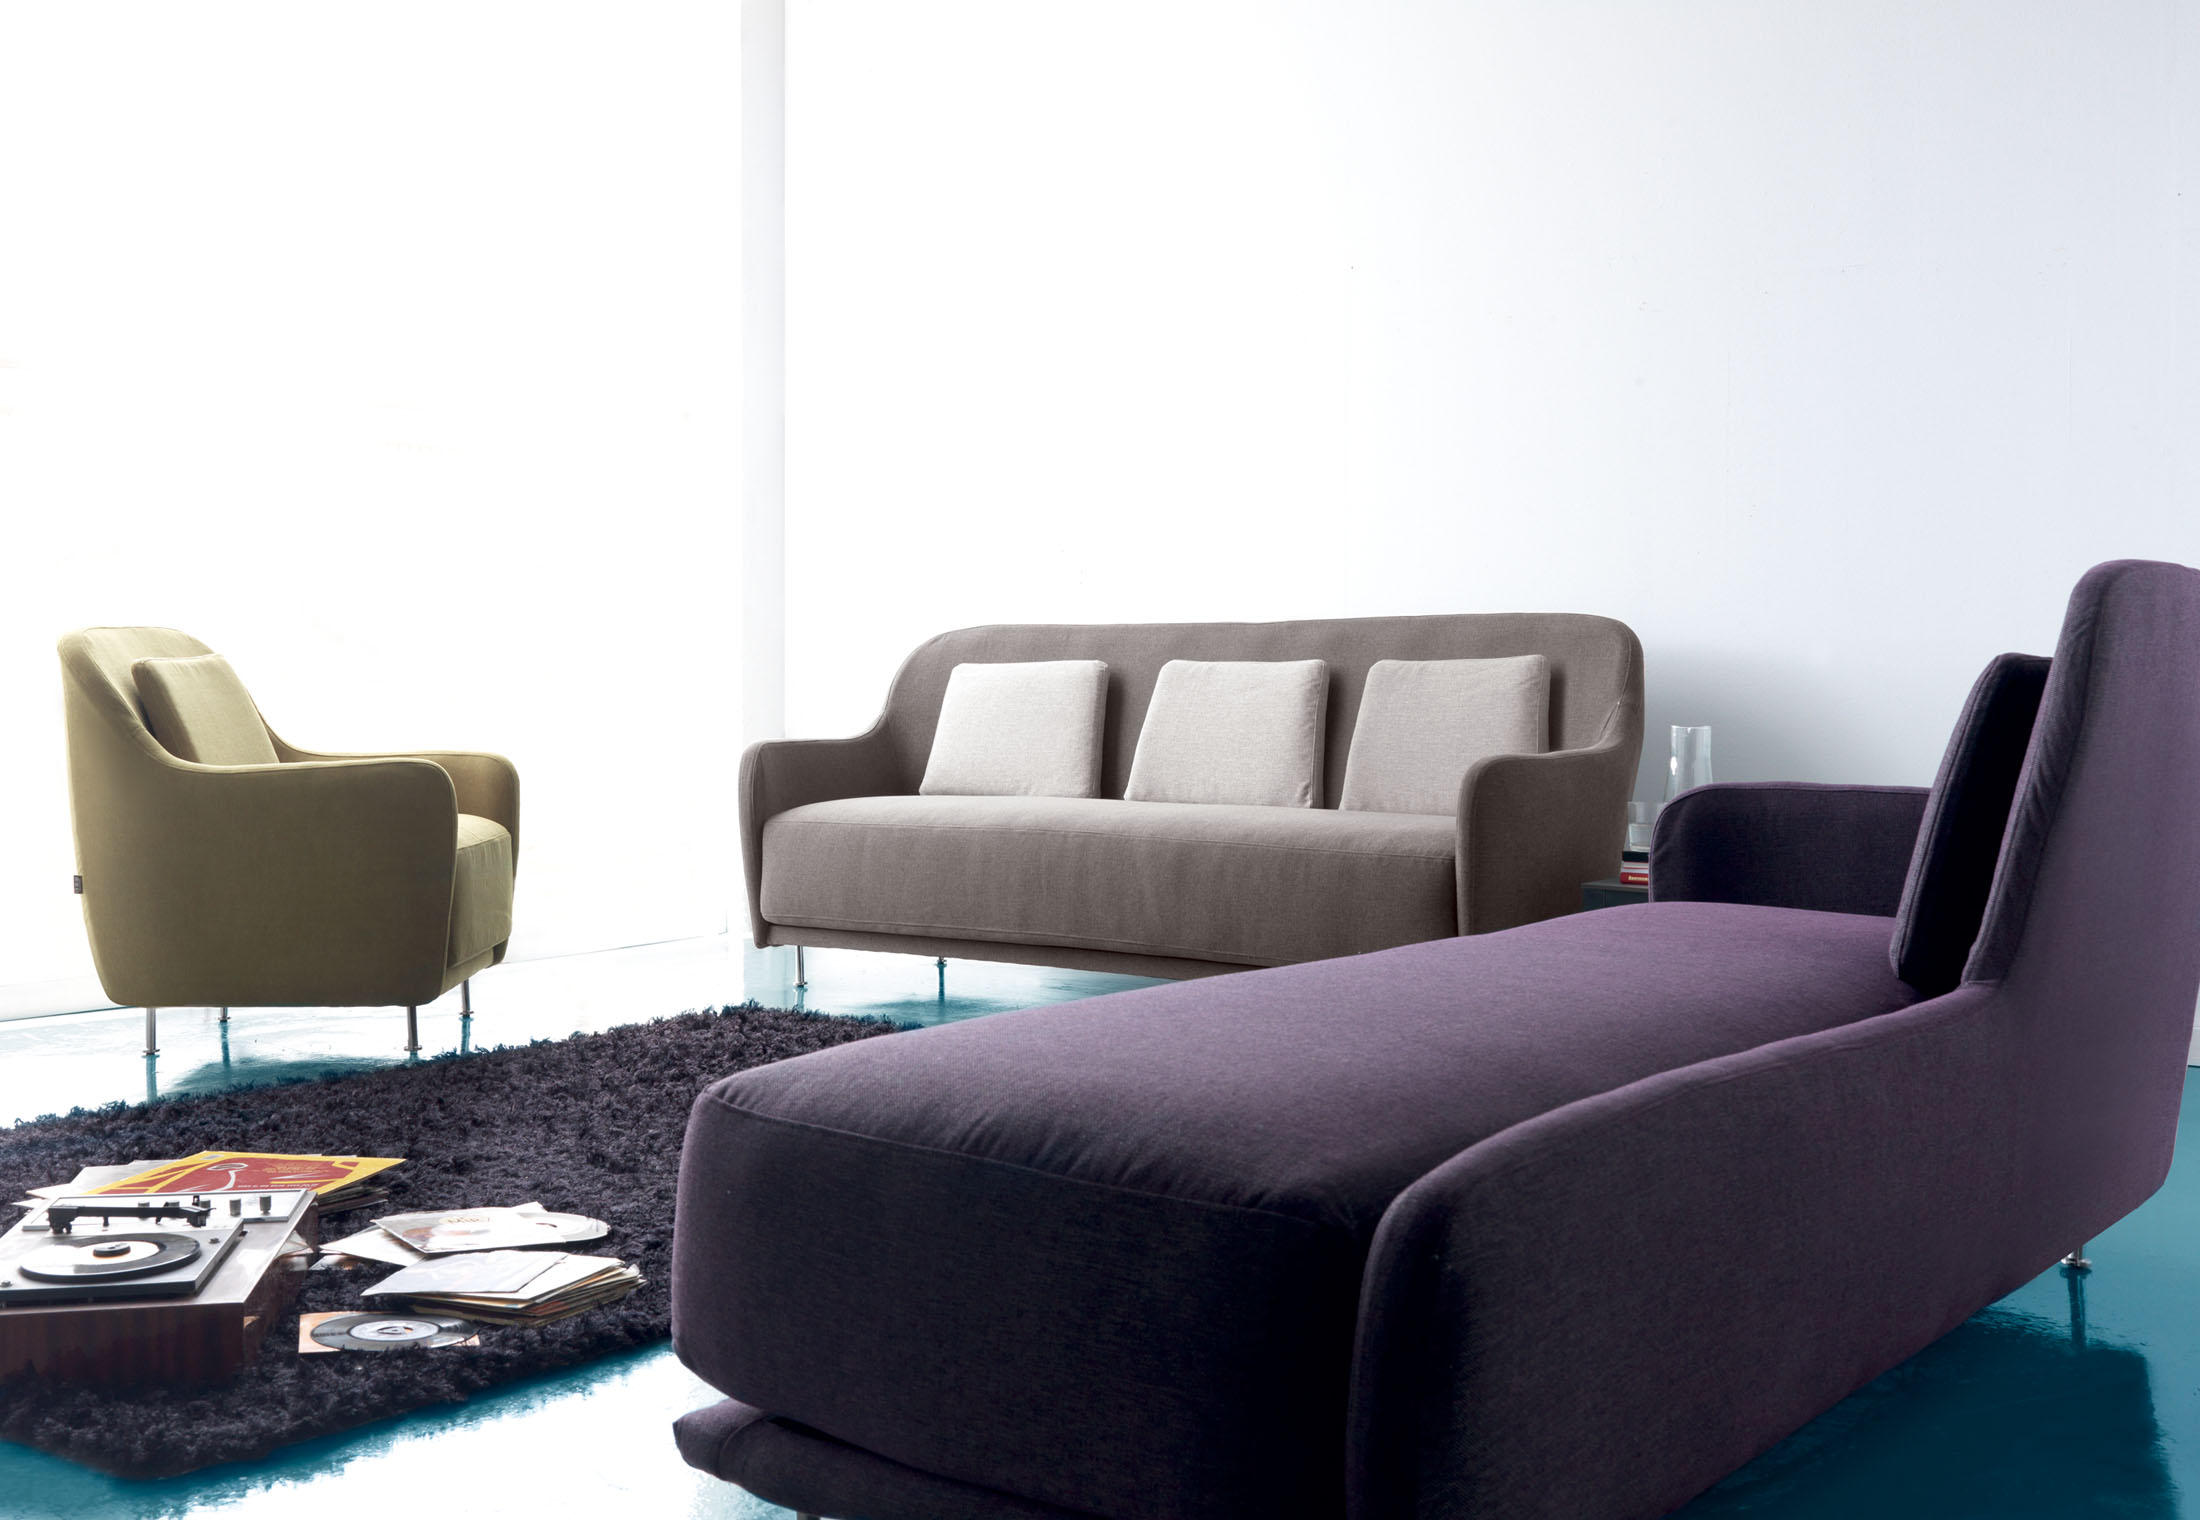 Audrey Butaca Sillones De Koo International Architonic # Muebles Bidasoa